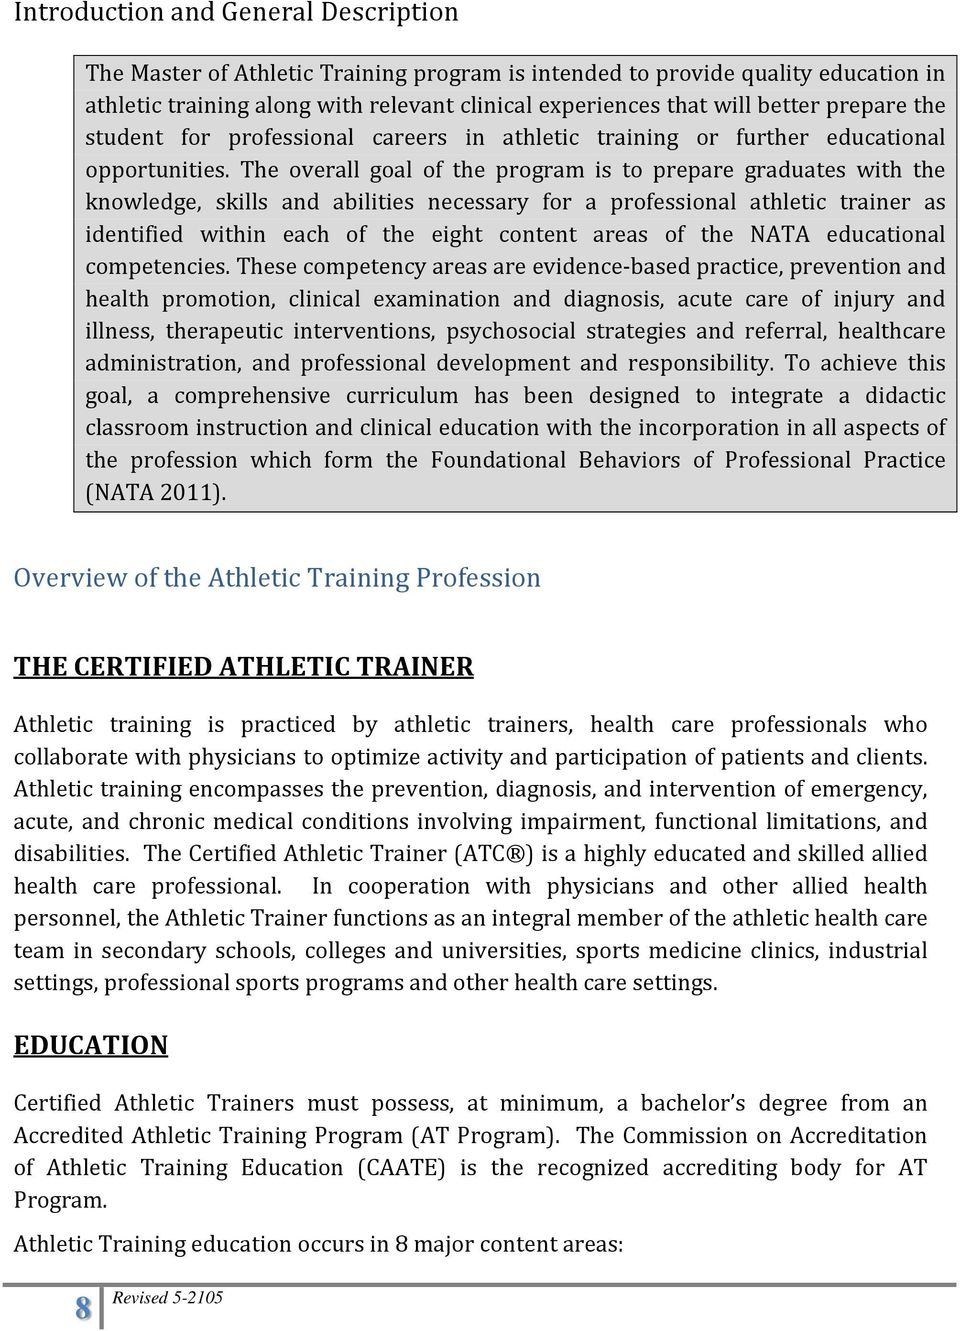 The overall goal of the program is to prepare graduates with the knowledge, skills and abilities necessary for a professional athletic trainer as identified within each of the eight content areas of